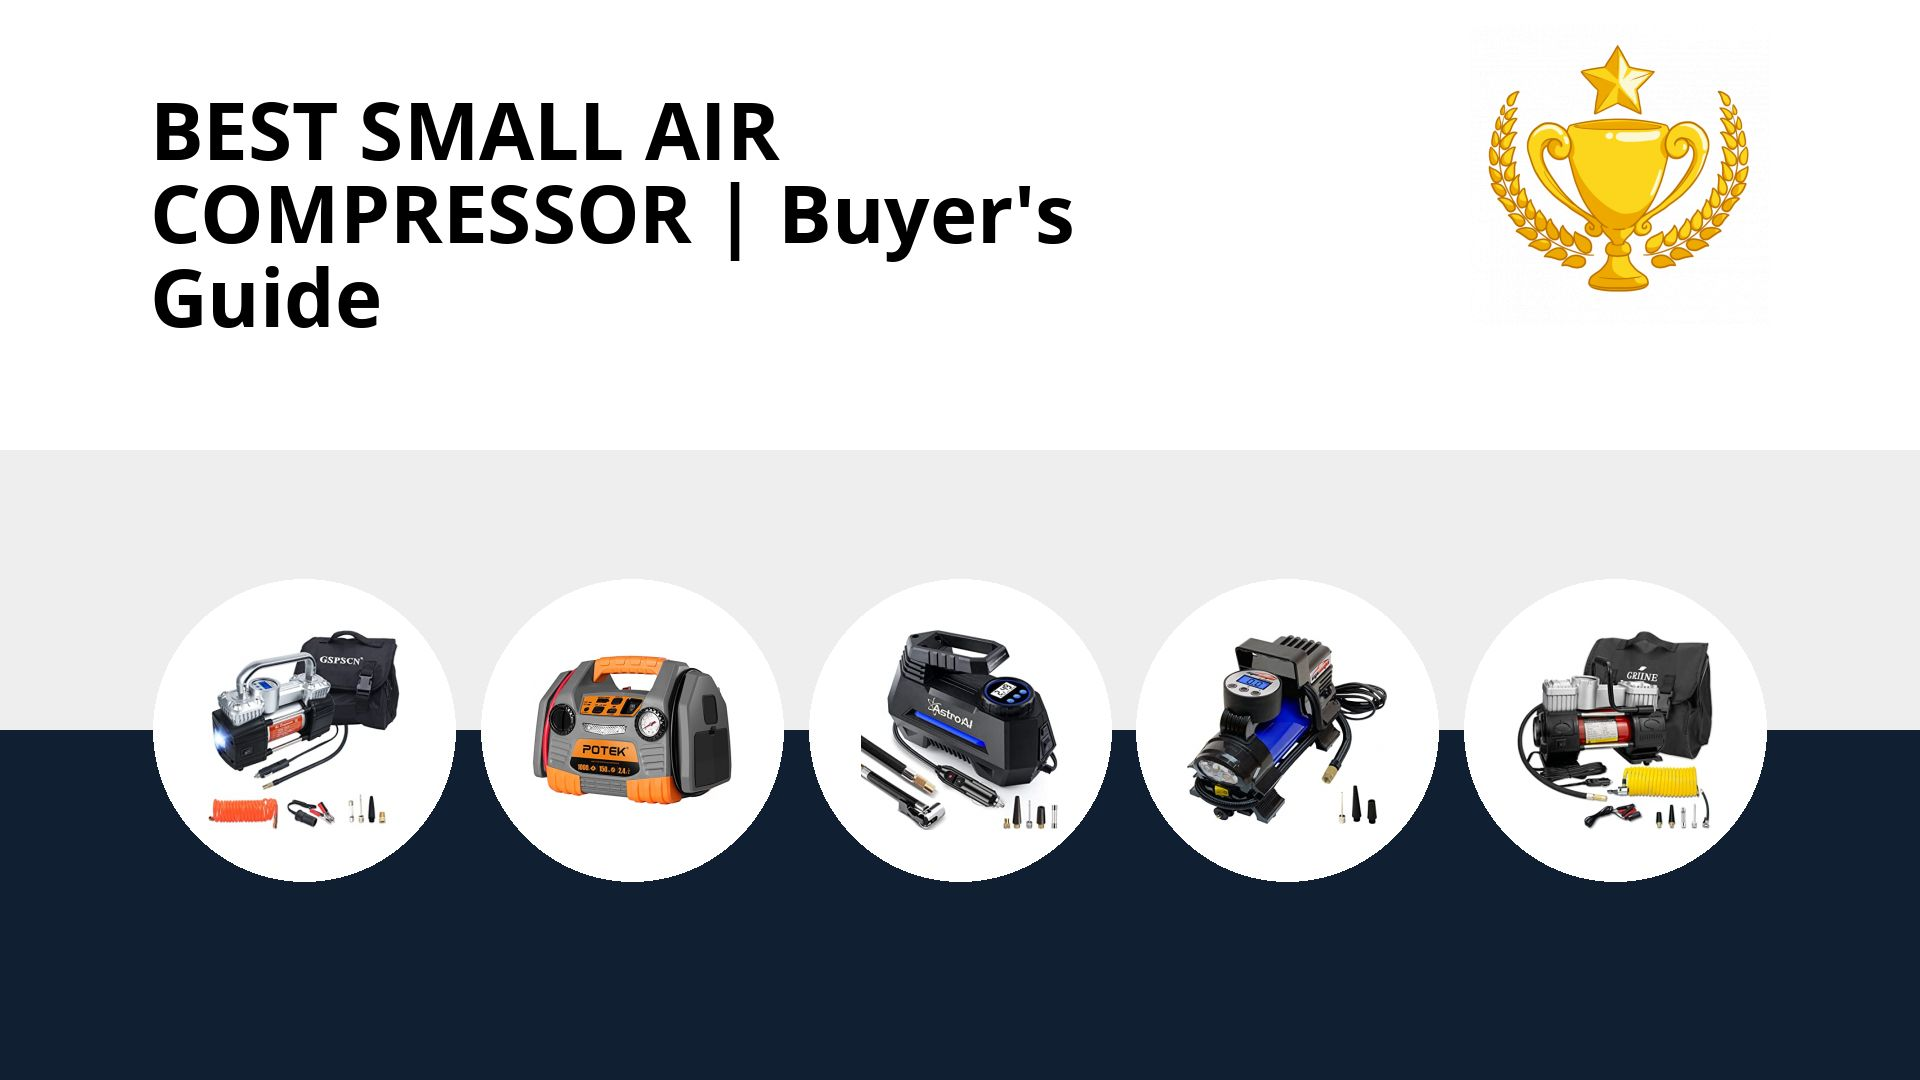 Best Small Air Compressor: image